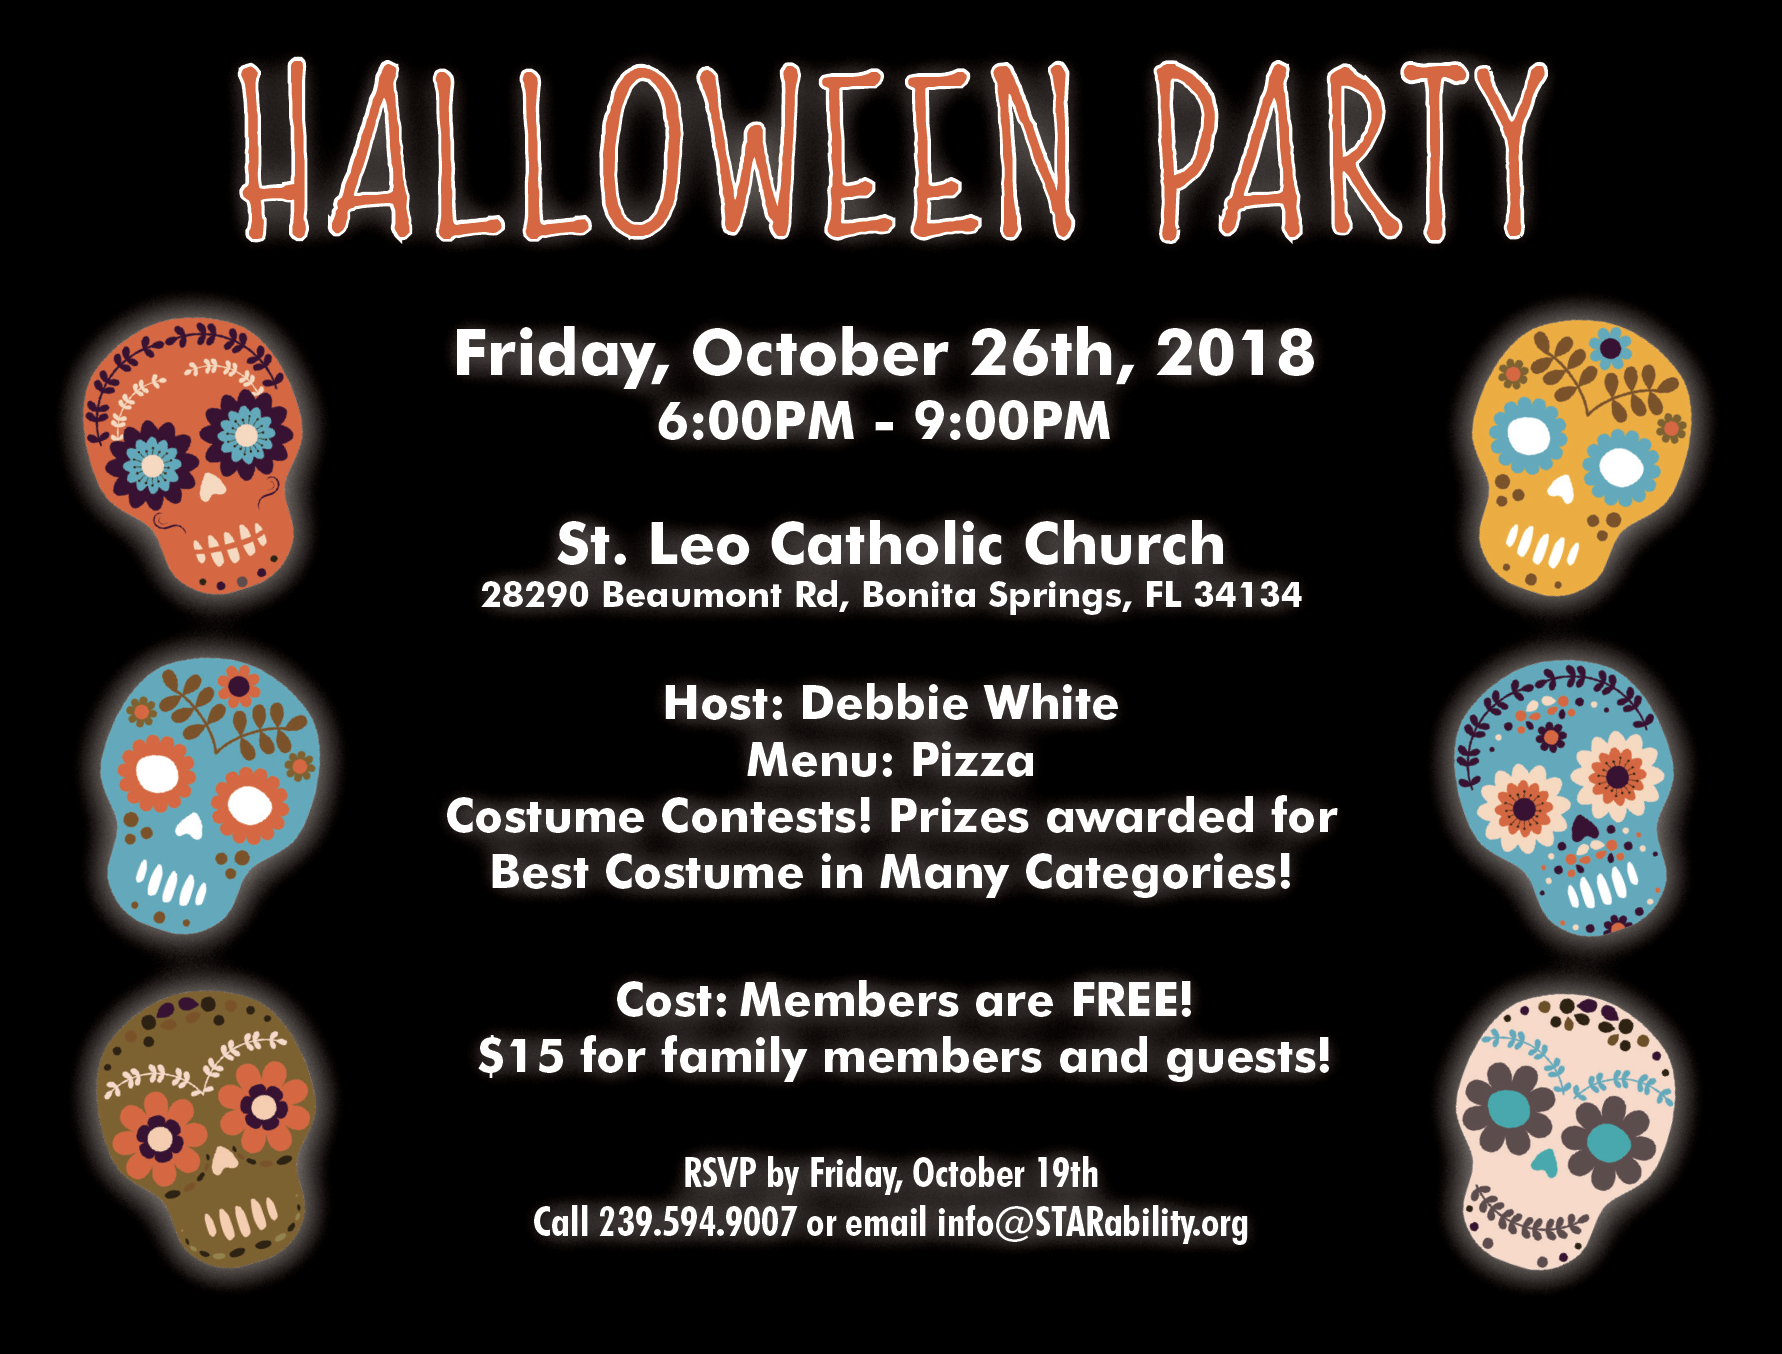 Halloween Party @ St. Leo Catholic Church